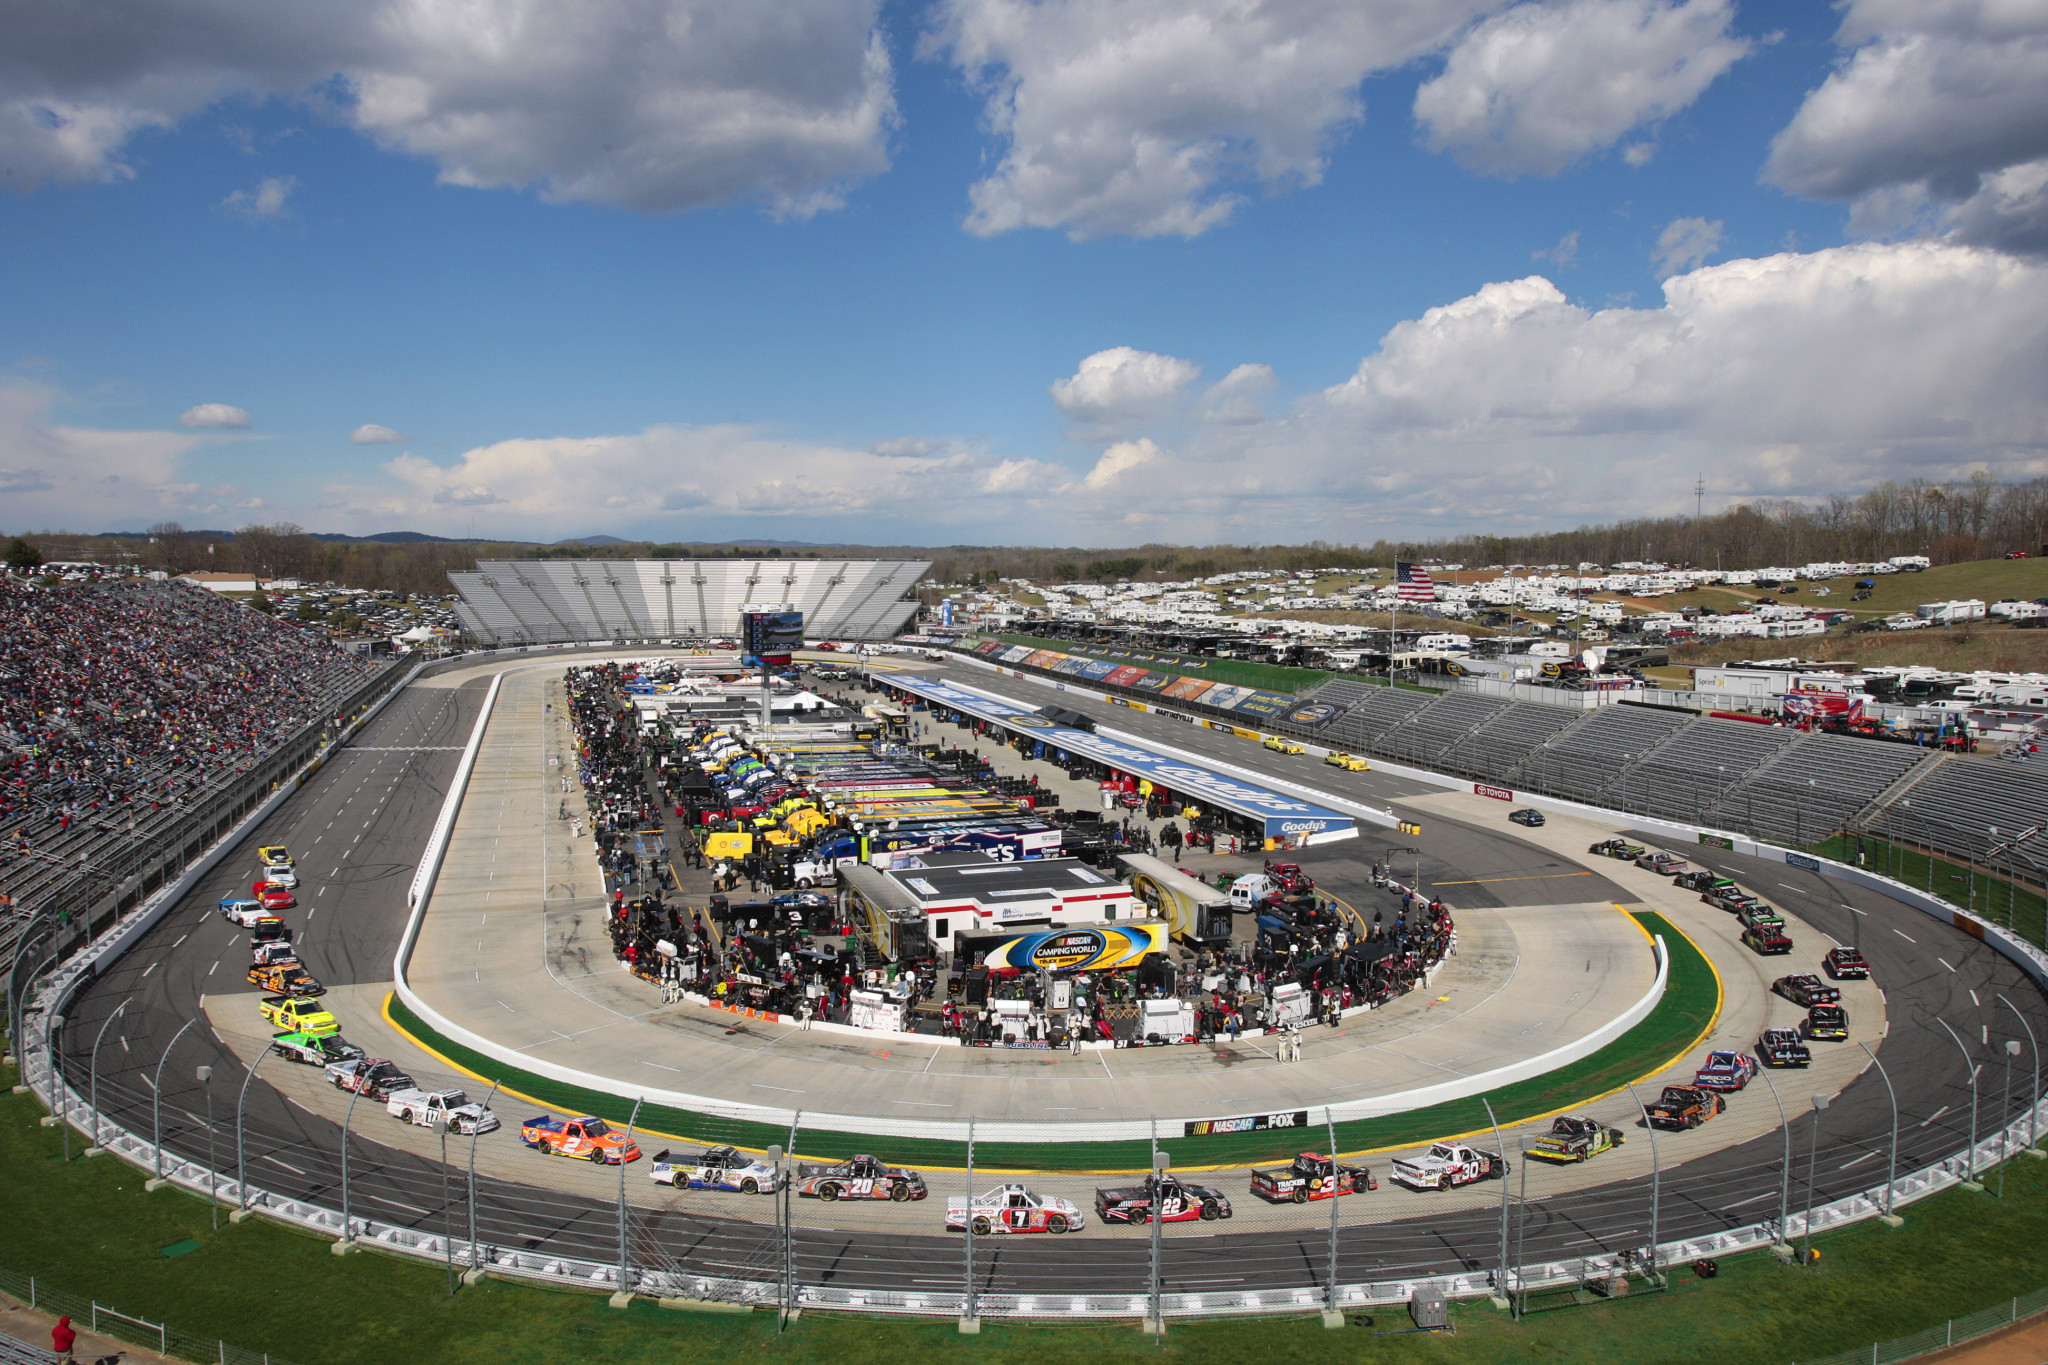 The Fast Data 500 is the second race to be held each year at Martinsville Speedway Come enjoy one of NASCARs most historic tracks